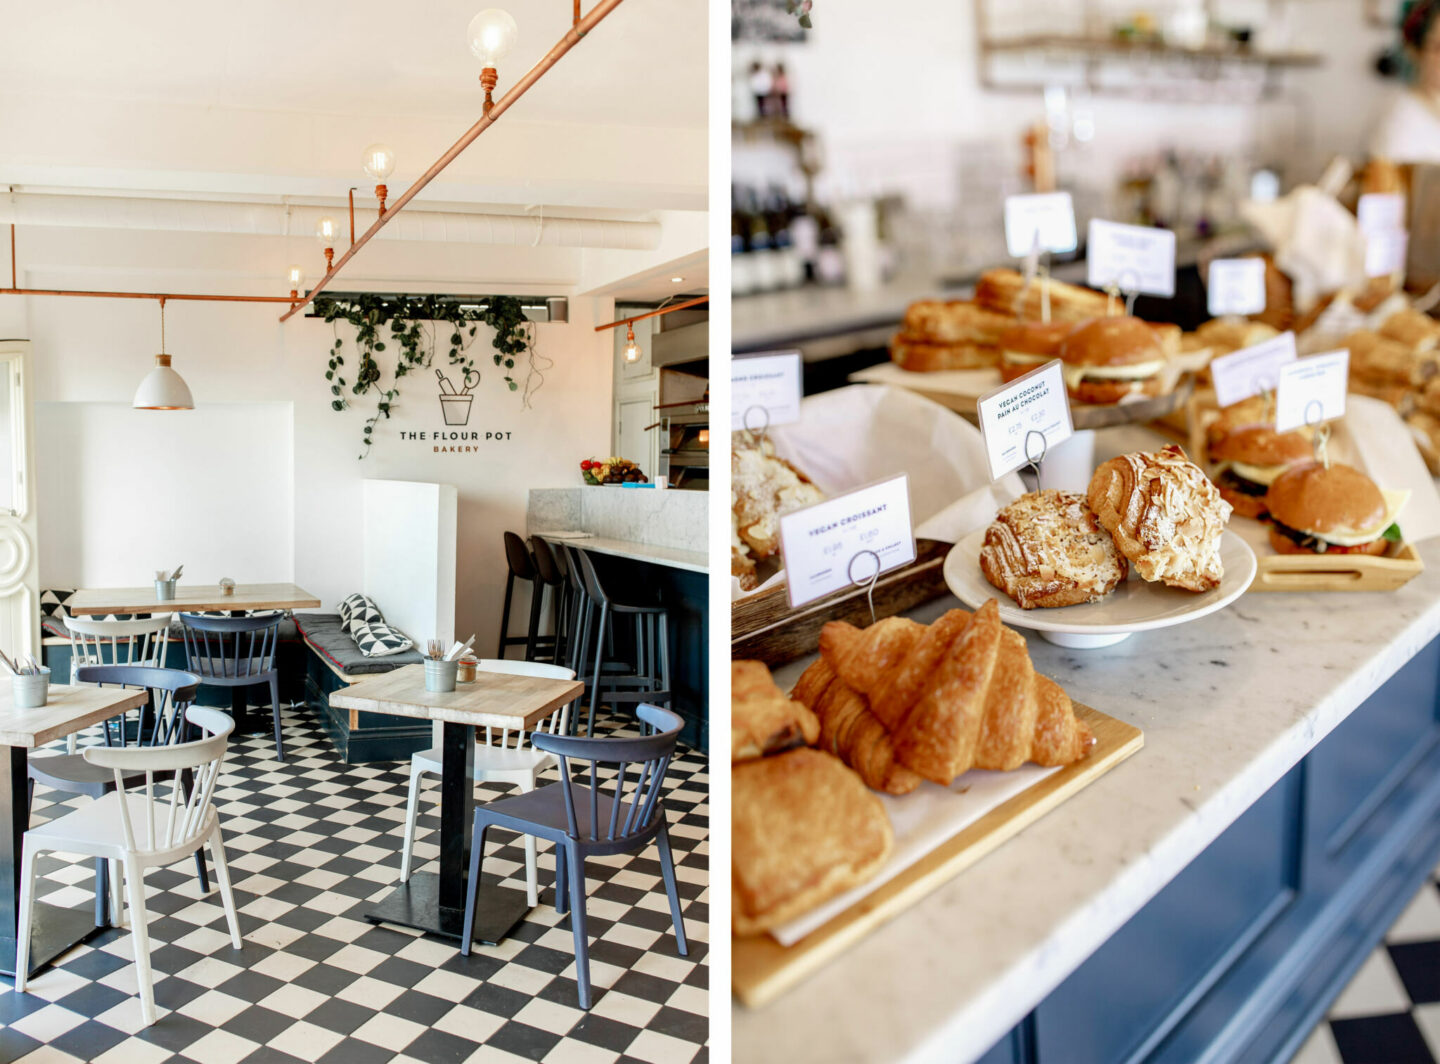 things-to-do-in-brighton-Bucket-list--Instagram-Story-Template--kelseyinlondon-Kelsey-Heinrichs-the-flour-pot-bakery.jpg